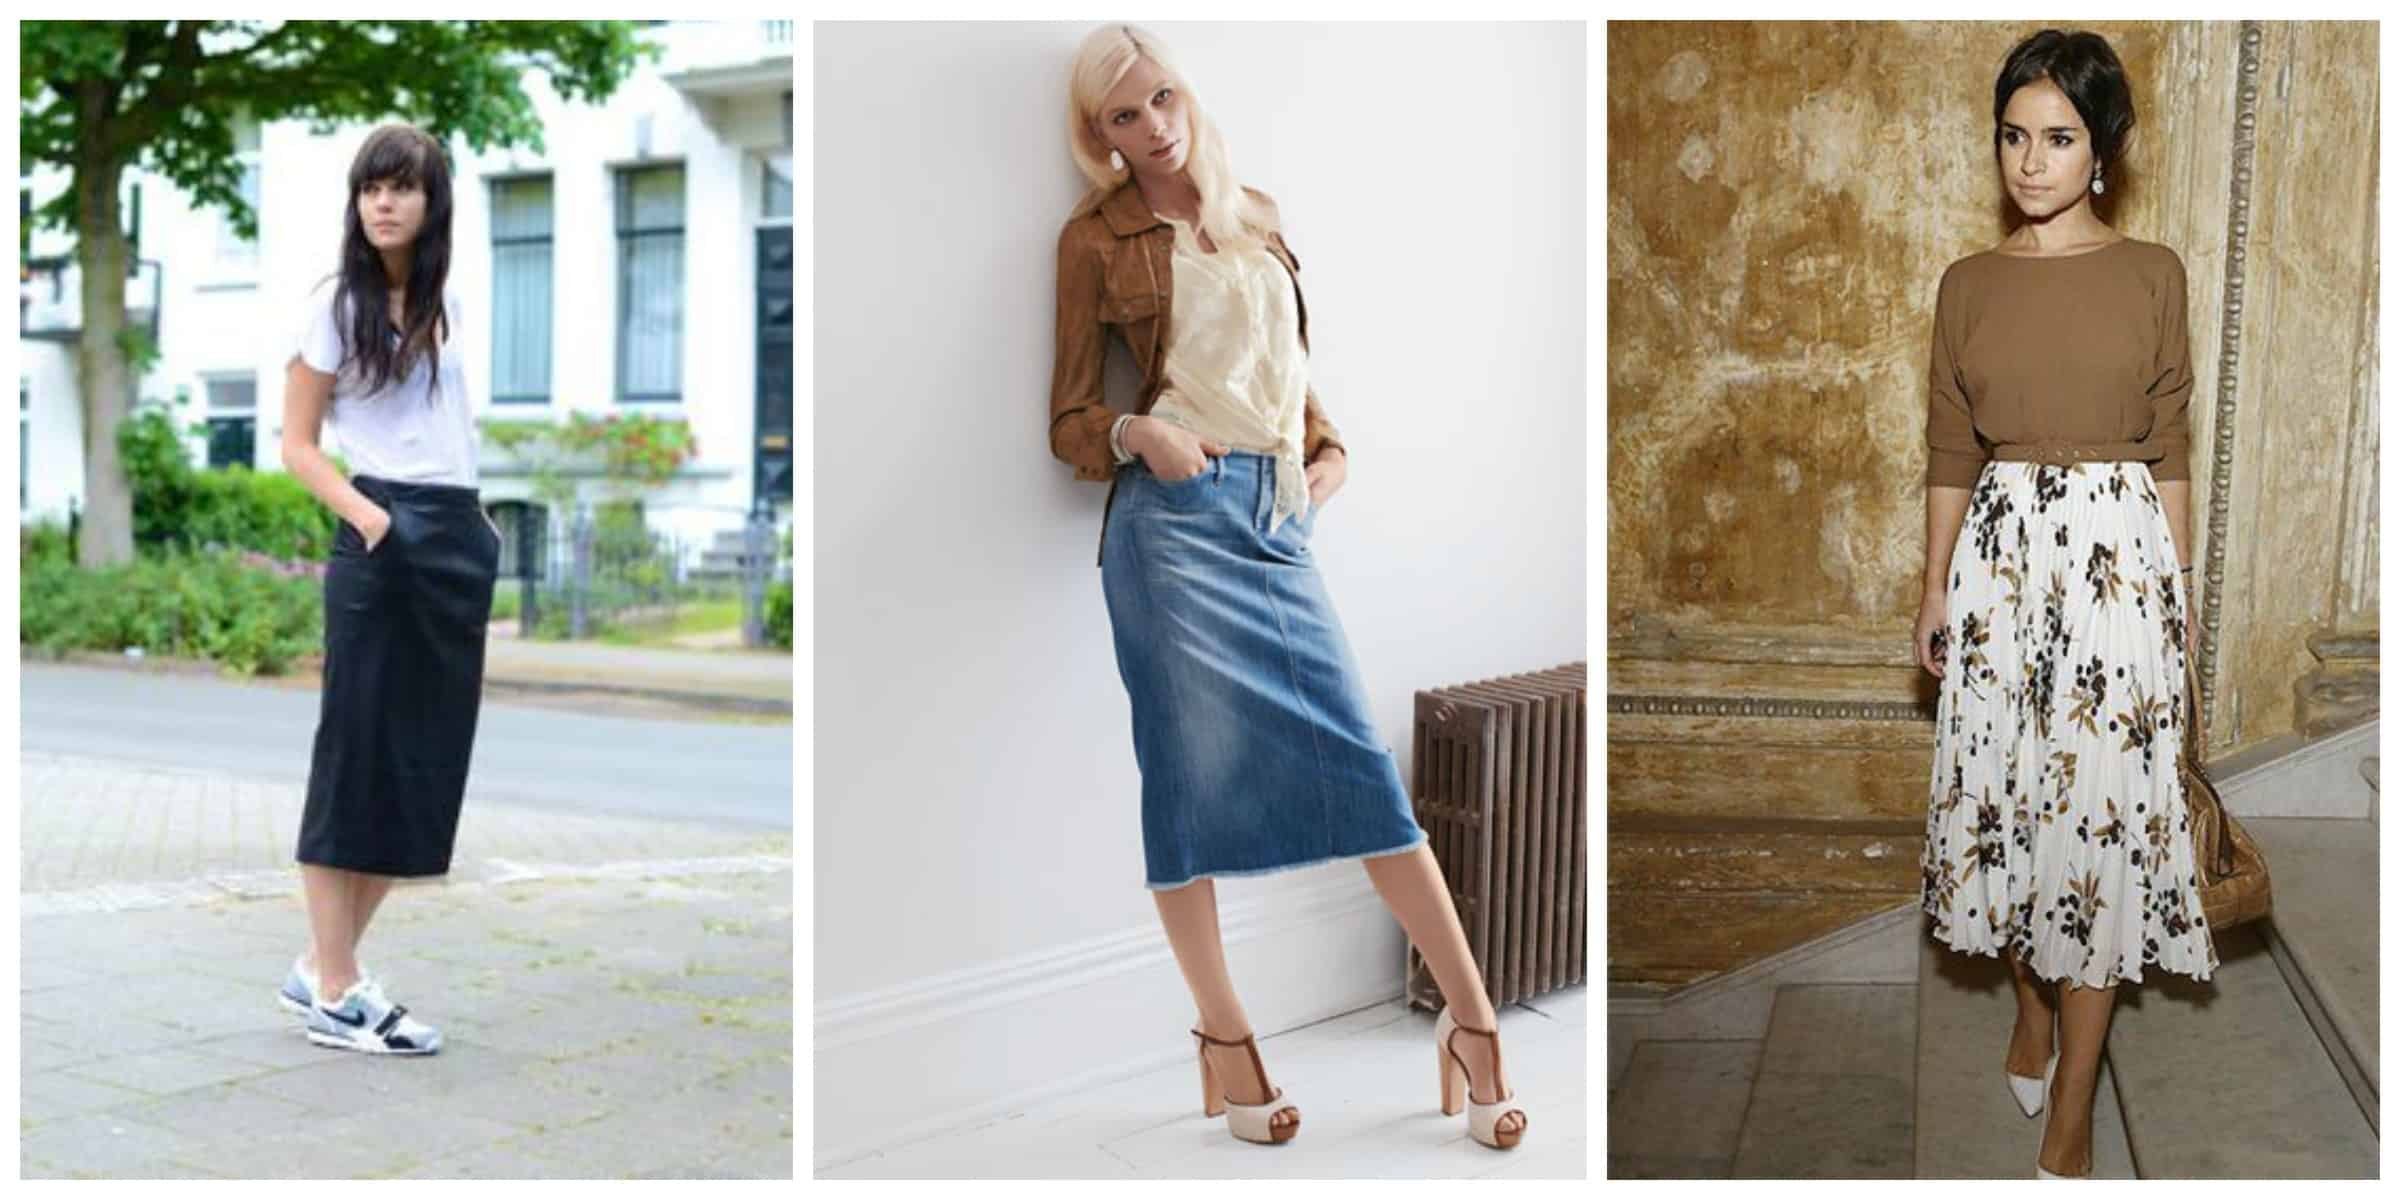 Skirts midi are in style for video